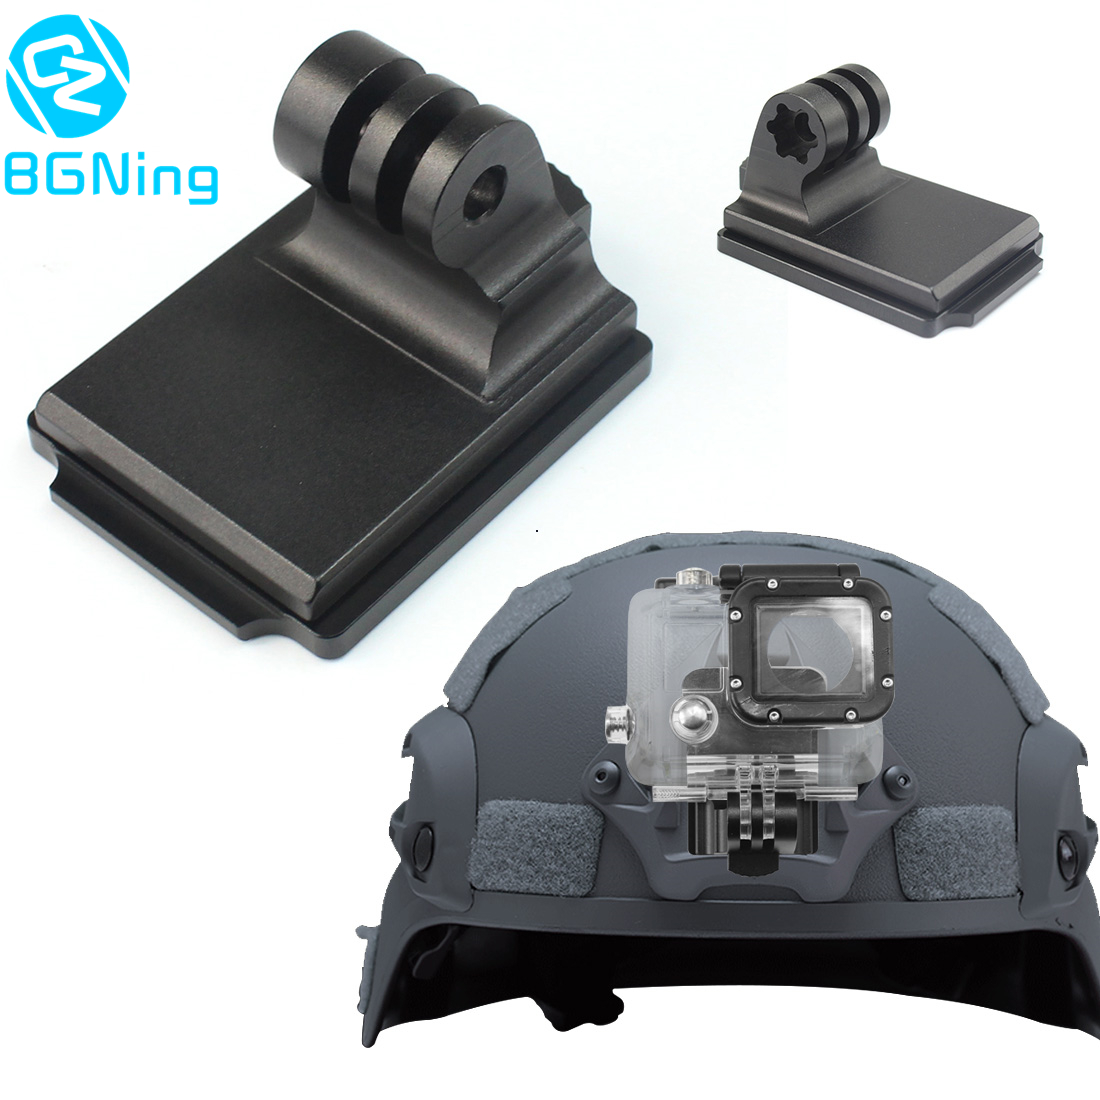 Aluminum Helmet Fixed Mount NVG Base Holder Adapter For GOPRO Hero 8 7 4 5 6 Session Yi Sjcam EKEN Action Video Sports Cameras